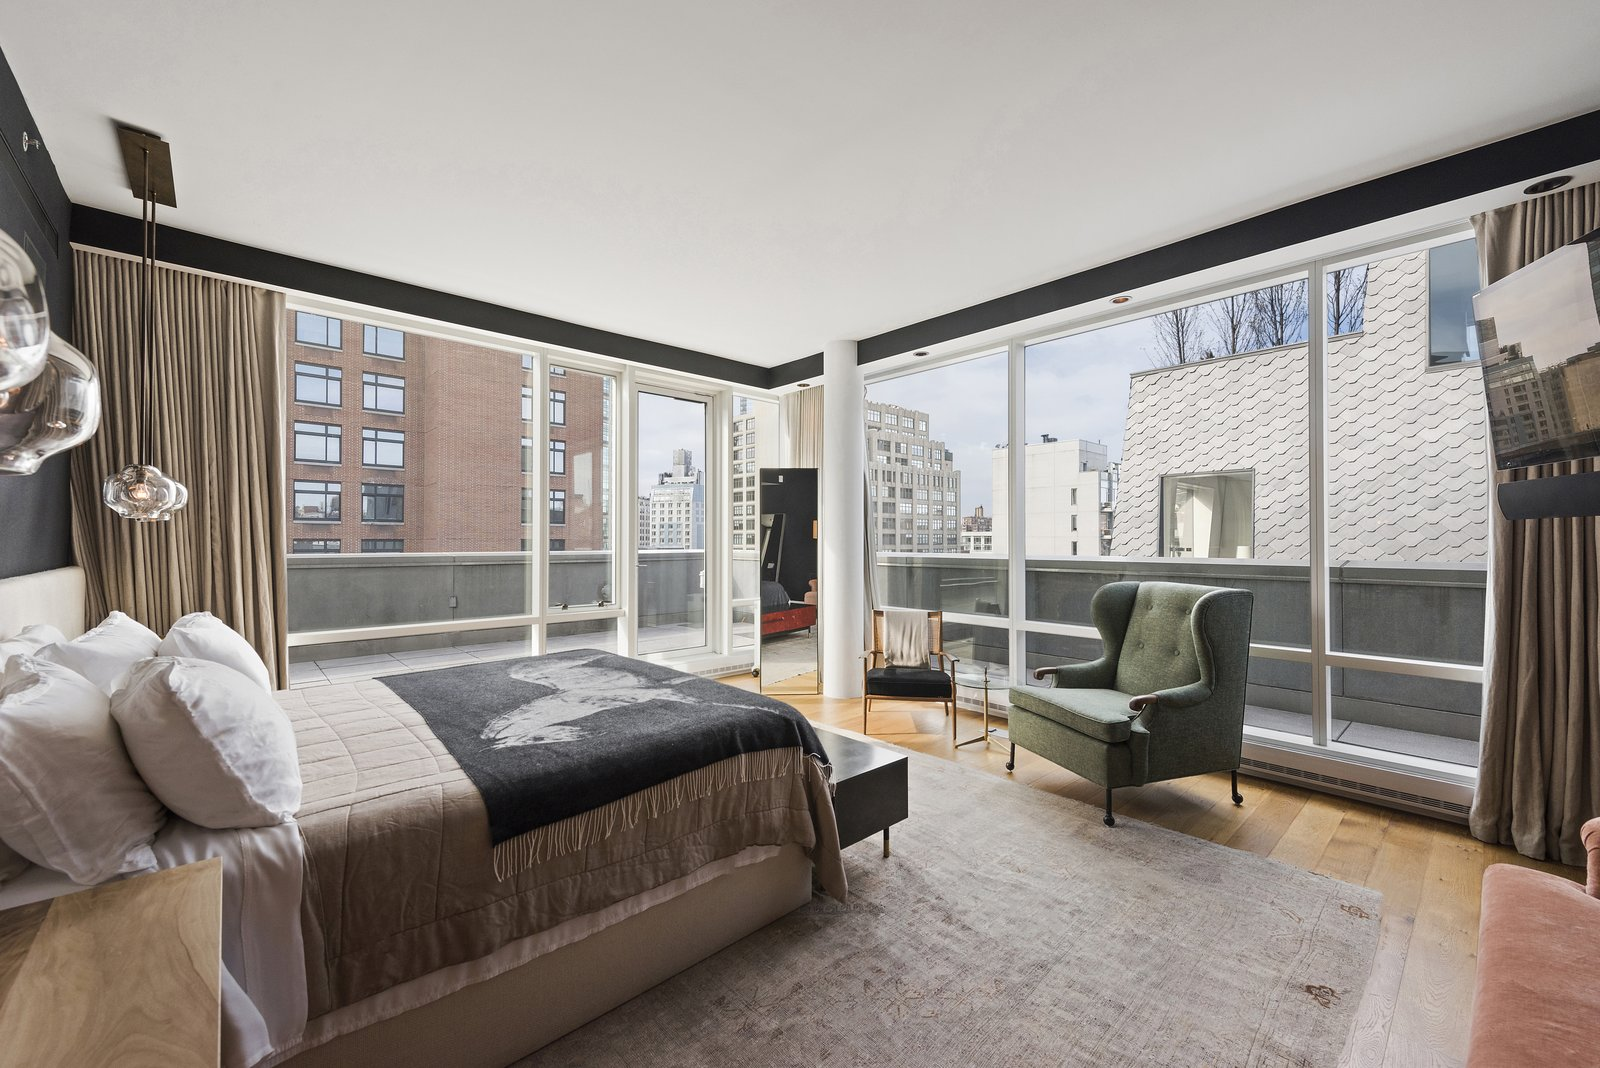 Bedroom, Medium Hardwood Floor, Chair, Bed, Rug Floor, Pendant Lighting, Recessed Lighting, Night Stands, and Bench The master bedroom features floor-to-ceiling windows and terrace access as well as a deluxe ensuite bathroom.  Photo 5 of 8 in Own Justin Timberlake's Posh Soho Penthouse For $8M